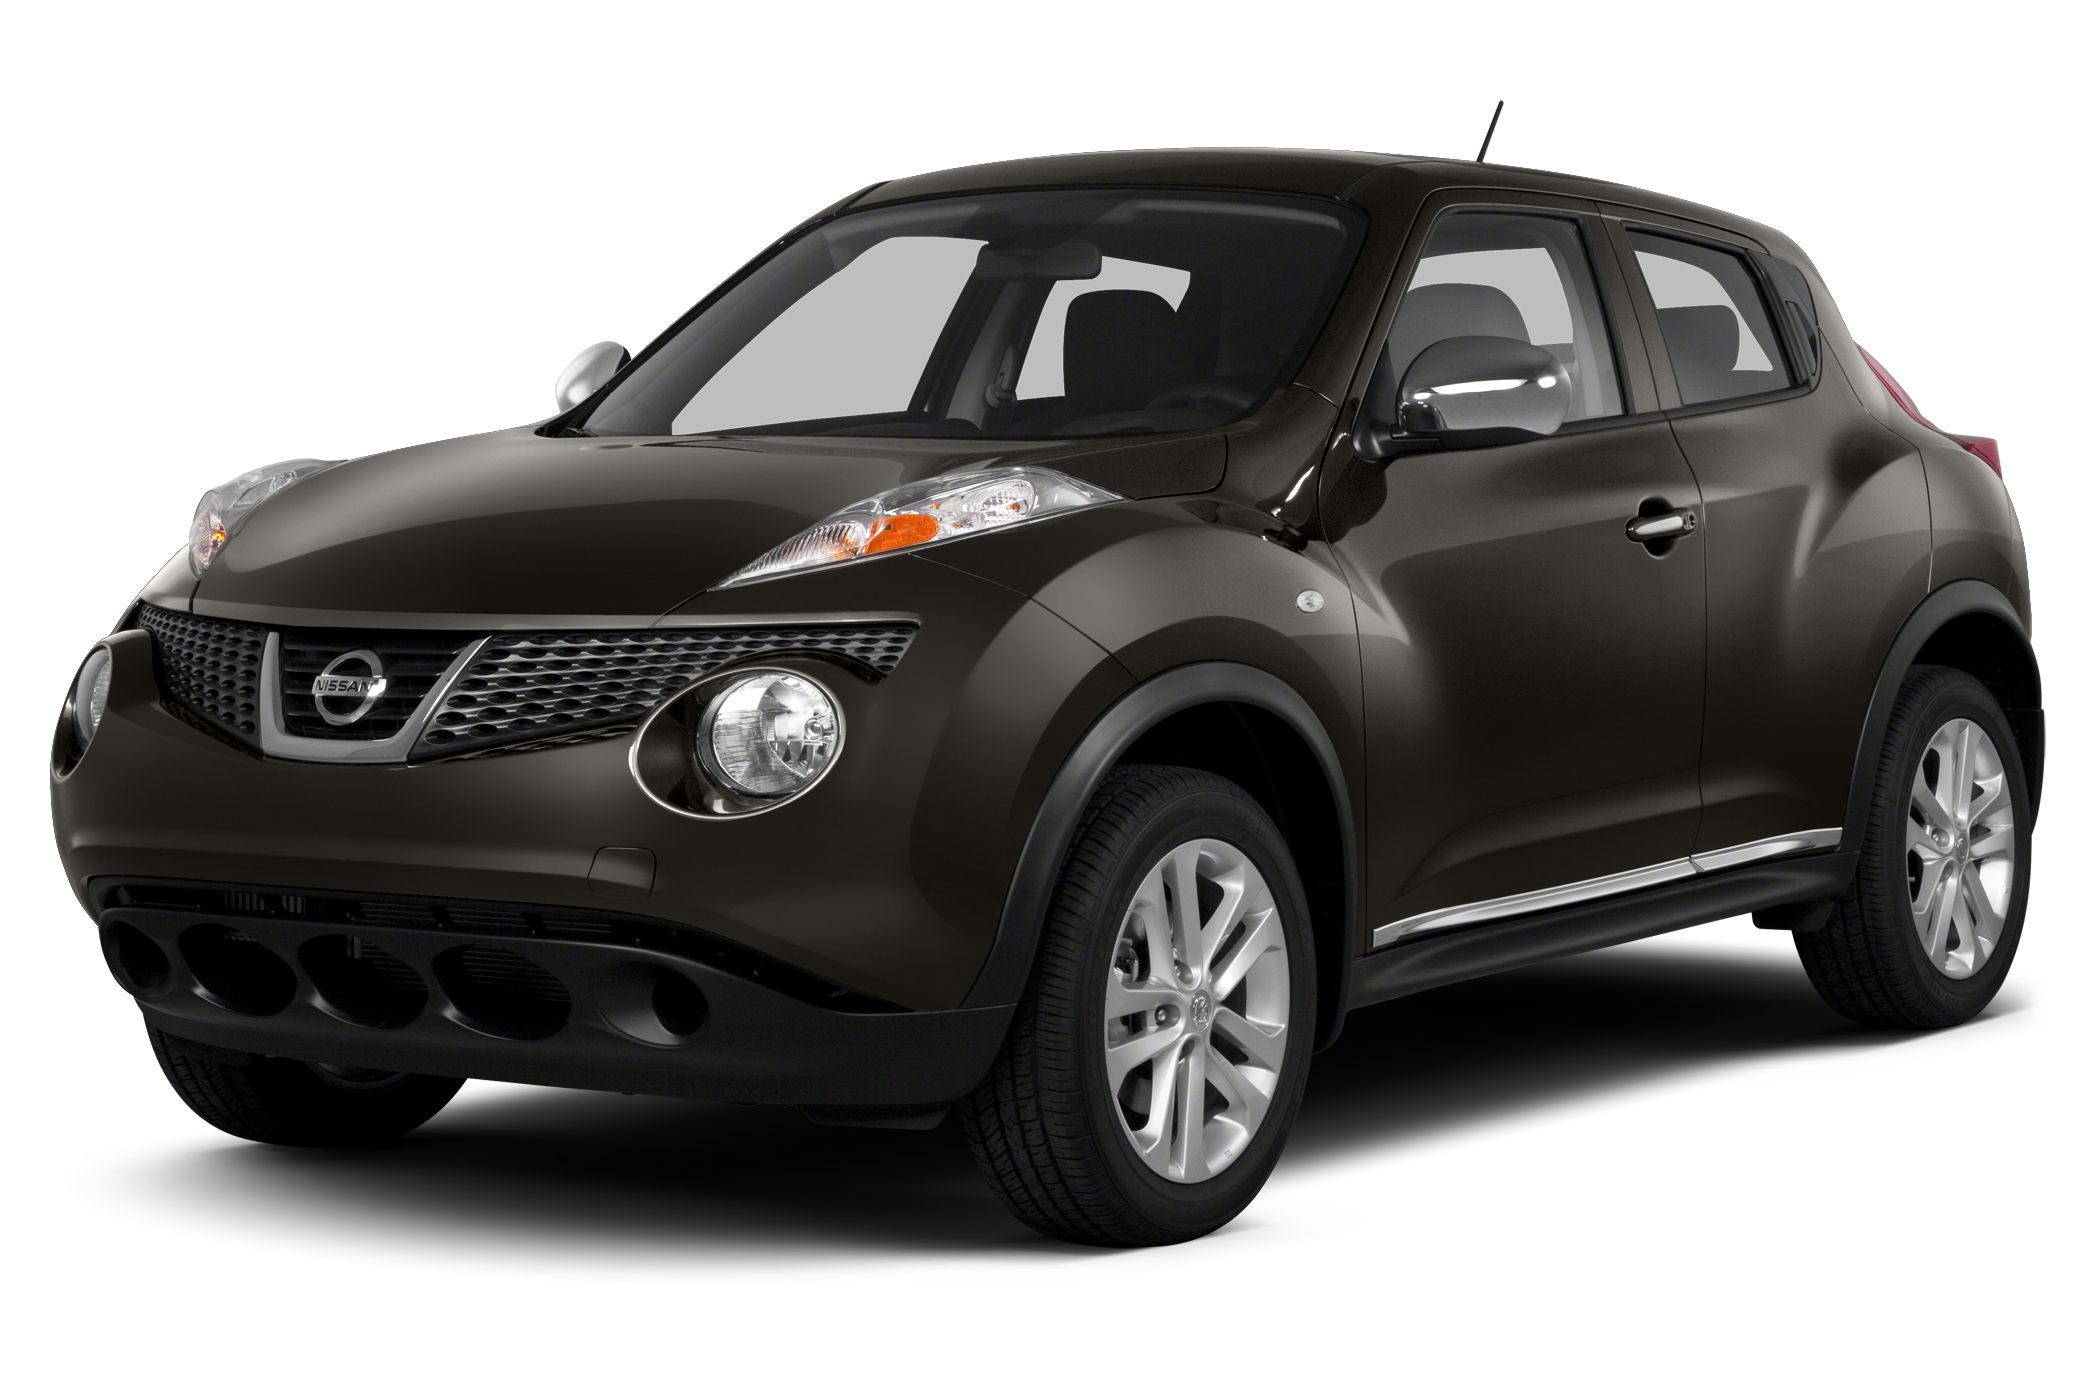 2013 Nissan Juke SV SUV for sale in Greer for $18,000 with 17,153 miles.